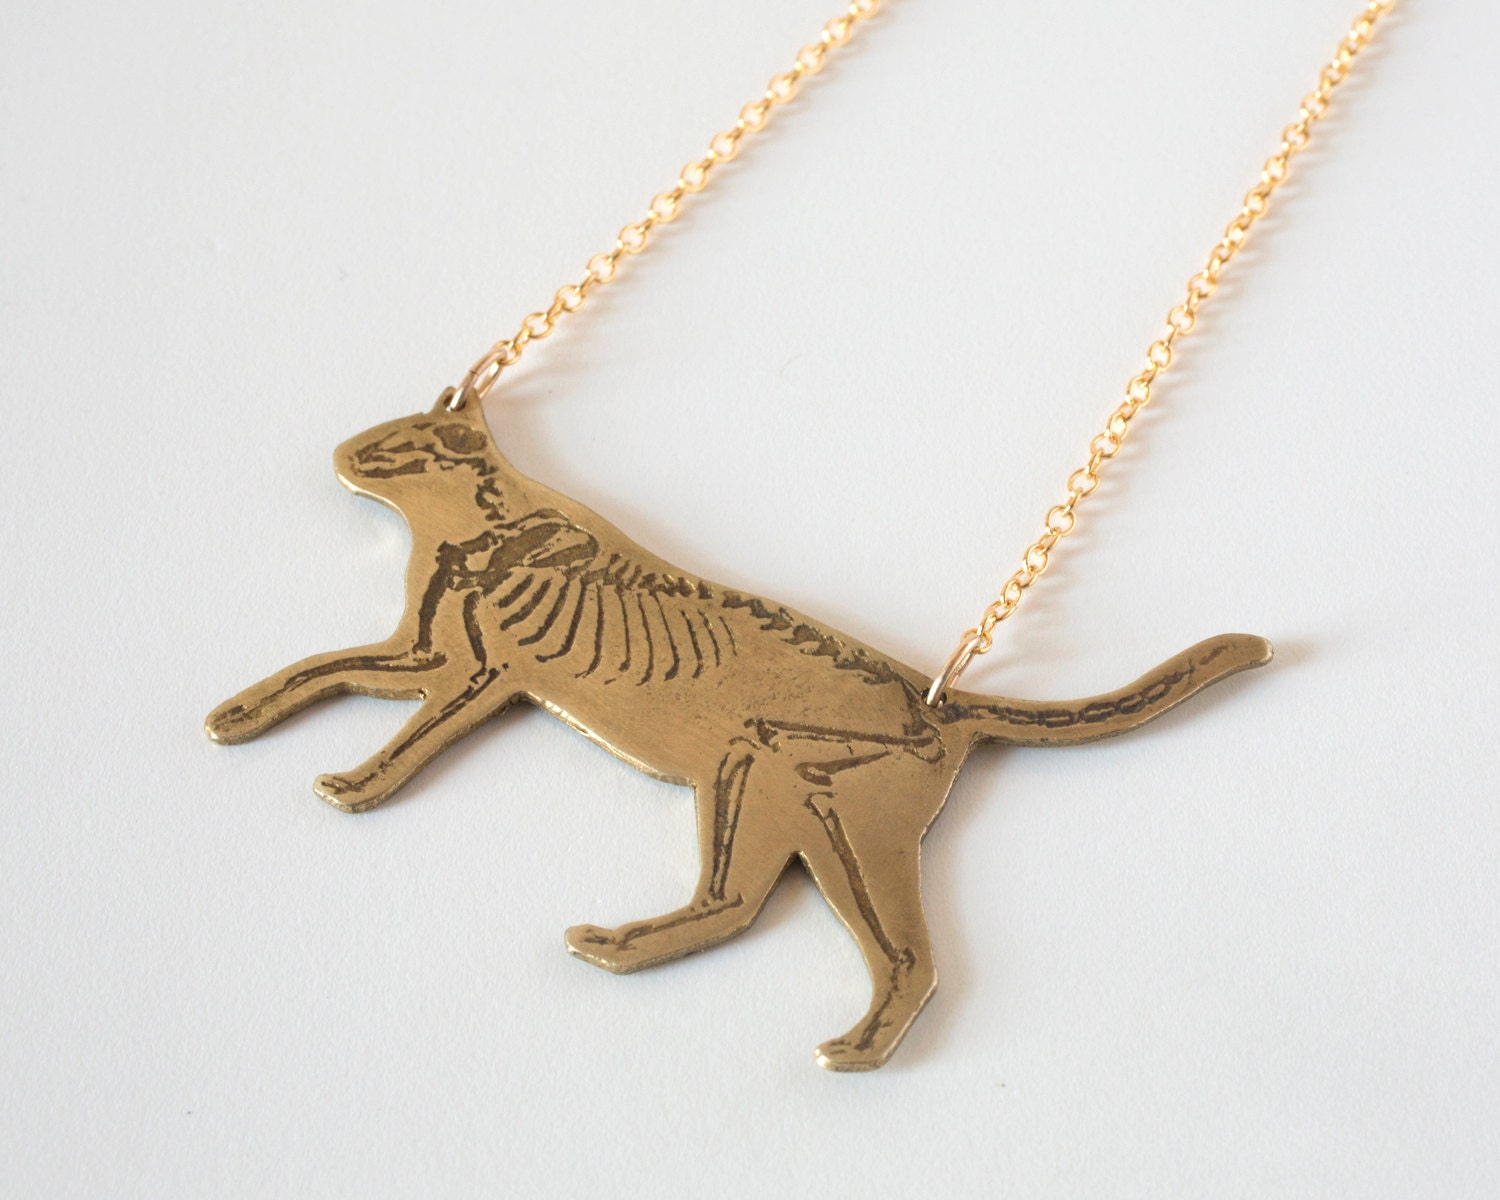 ukraine alternative delivery cat p in views necklace silver for pink htm